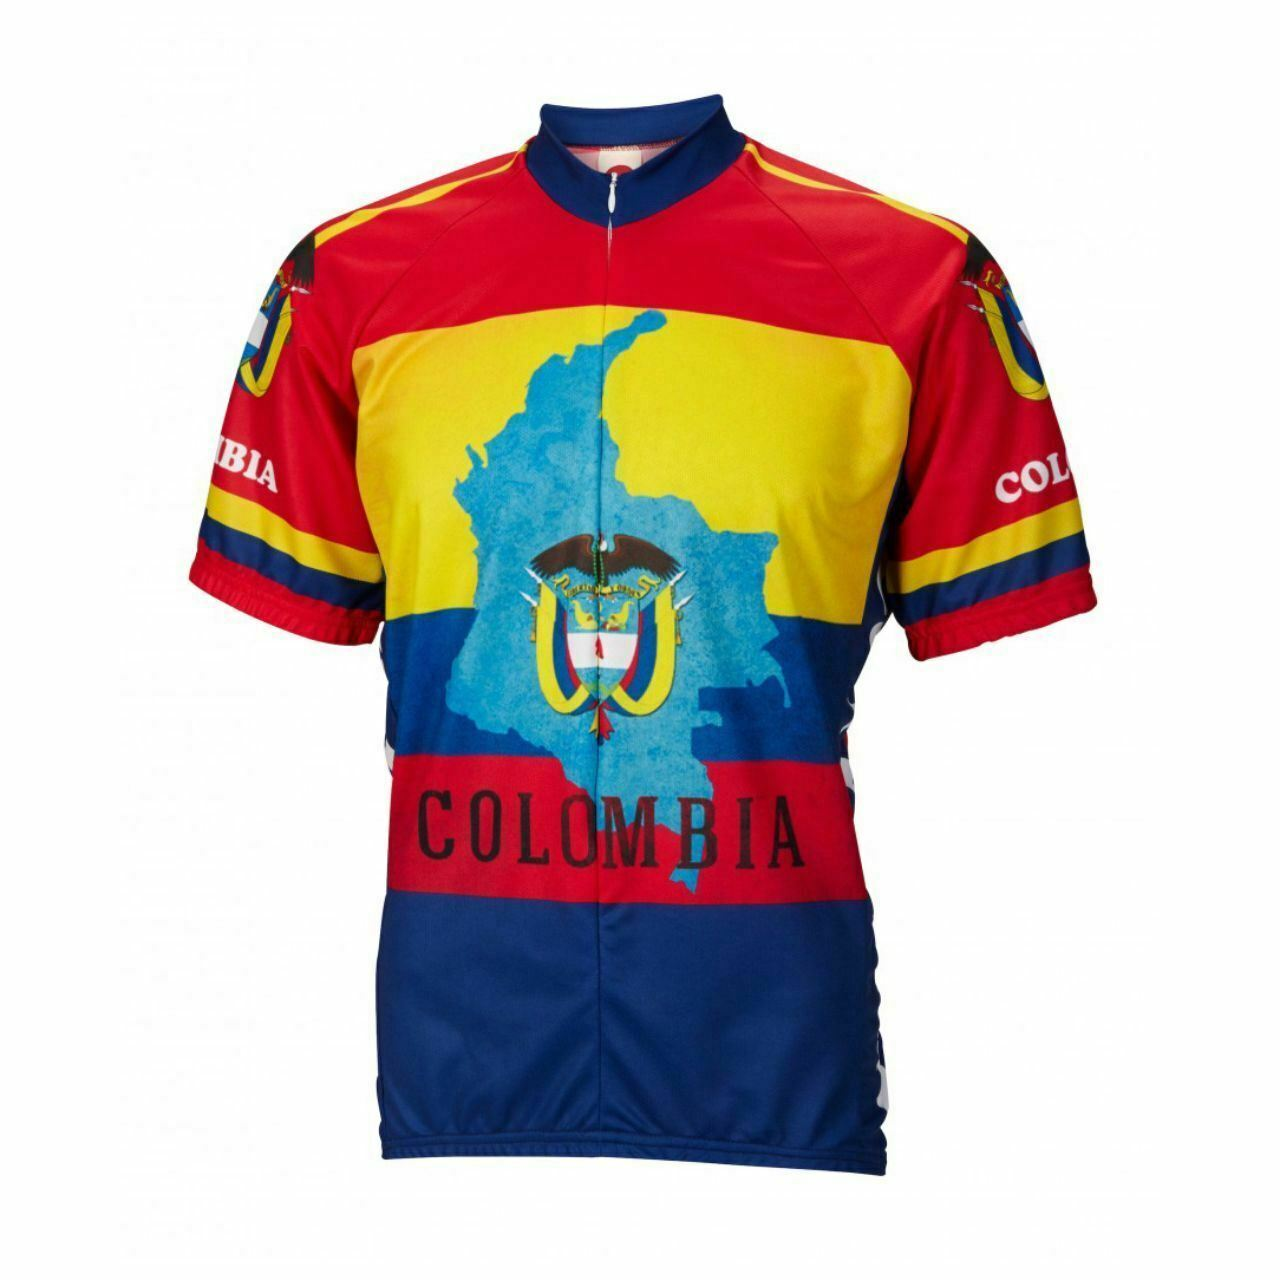 Columbia  country pride Short sleeve 16  zip men's cycling jersey  save 35% - 70% off